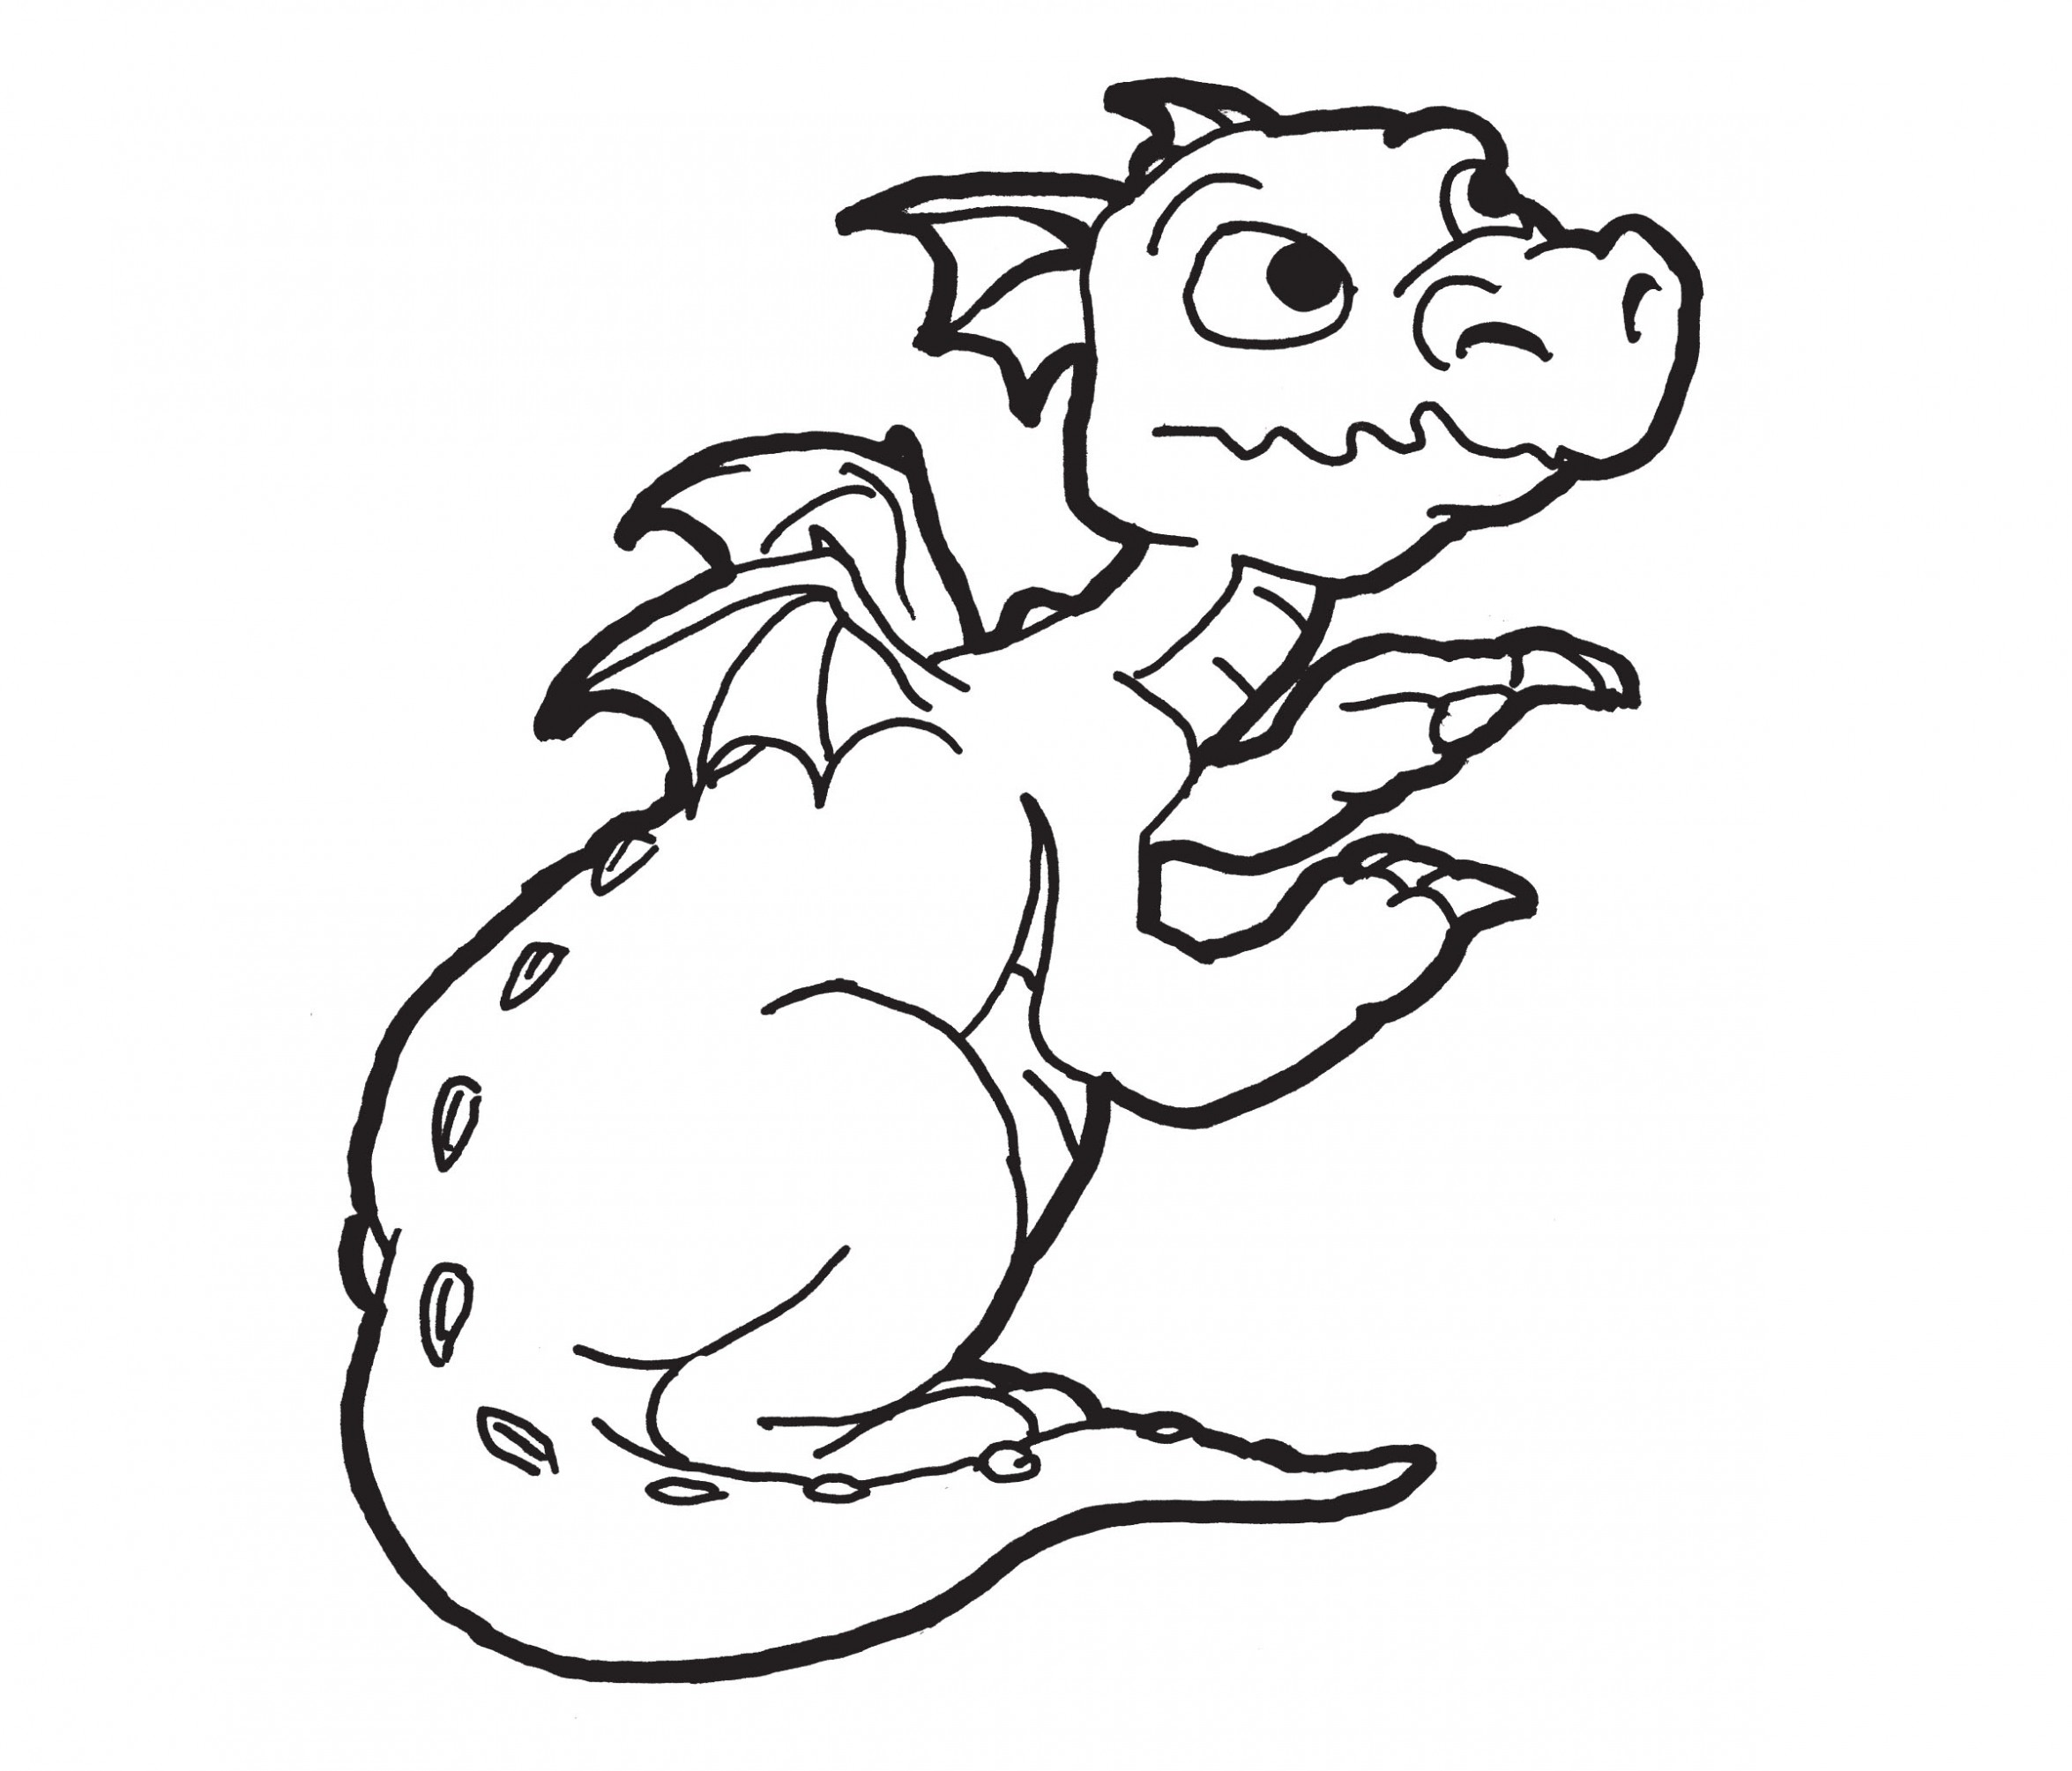 Free coloring pages komodo dragon - Co Coloring Pages For Adults Dragons Komodo Dragon Pictures To Color Gallery